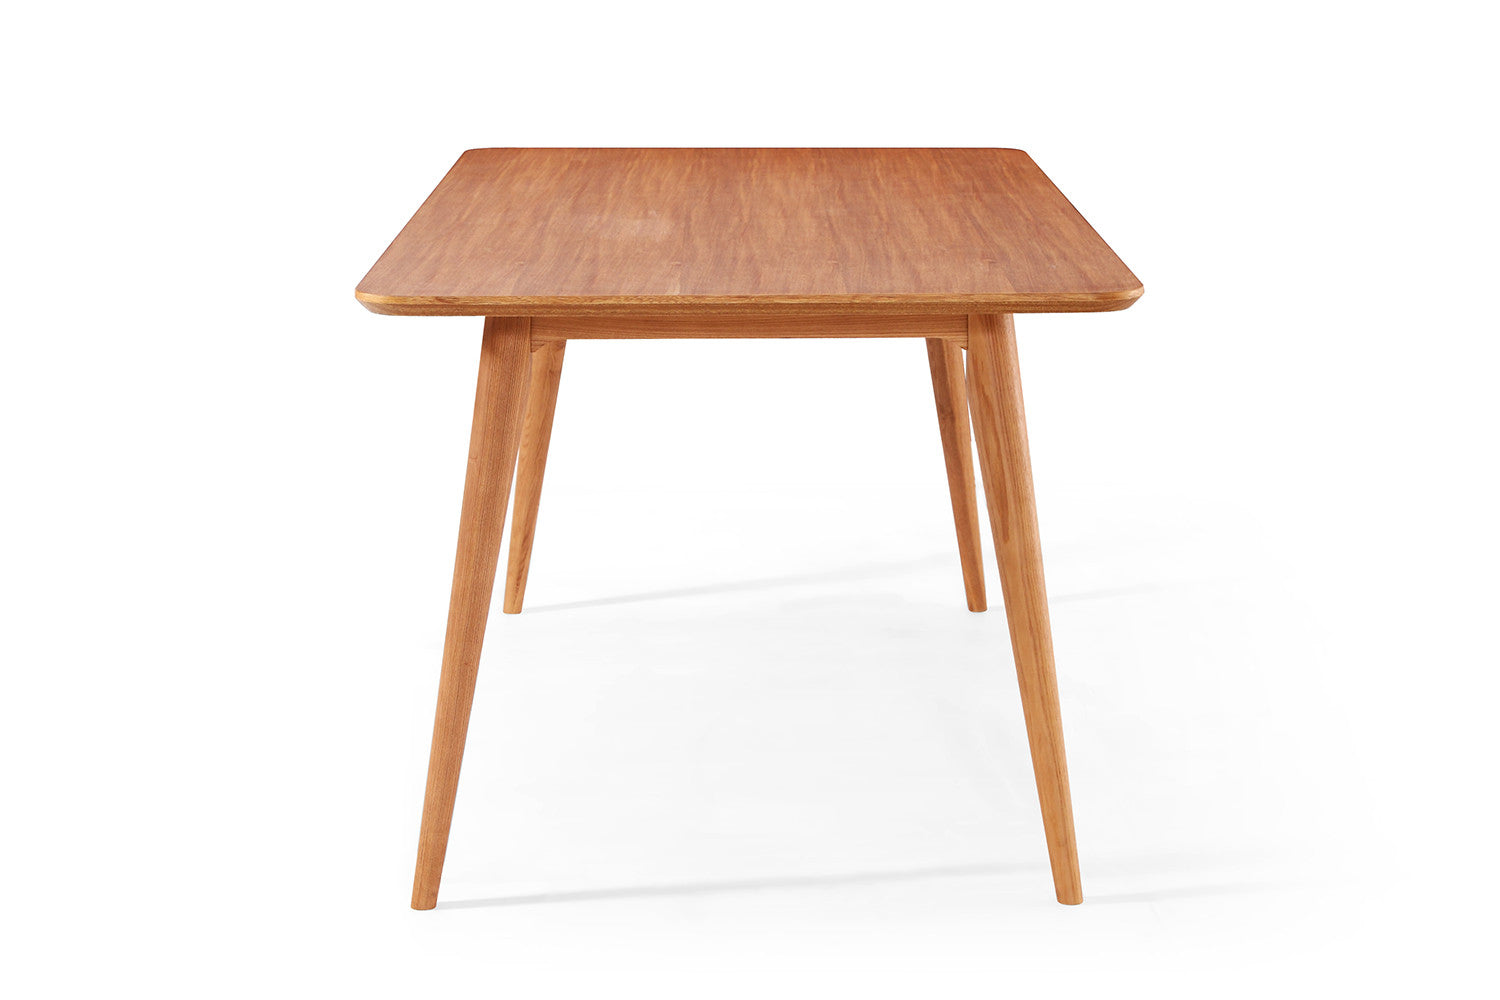 Table de salle manger design en bois julia dewarens for Flamant table salle manger